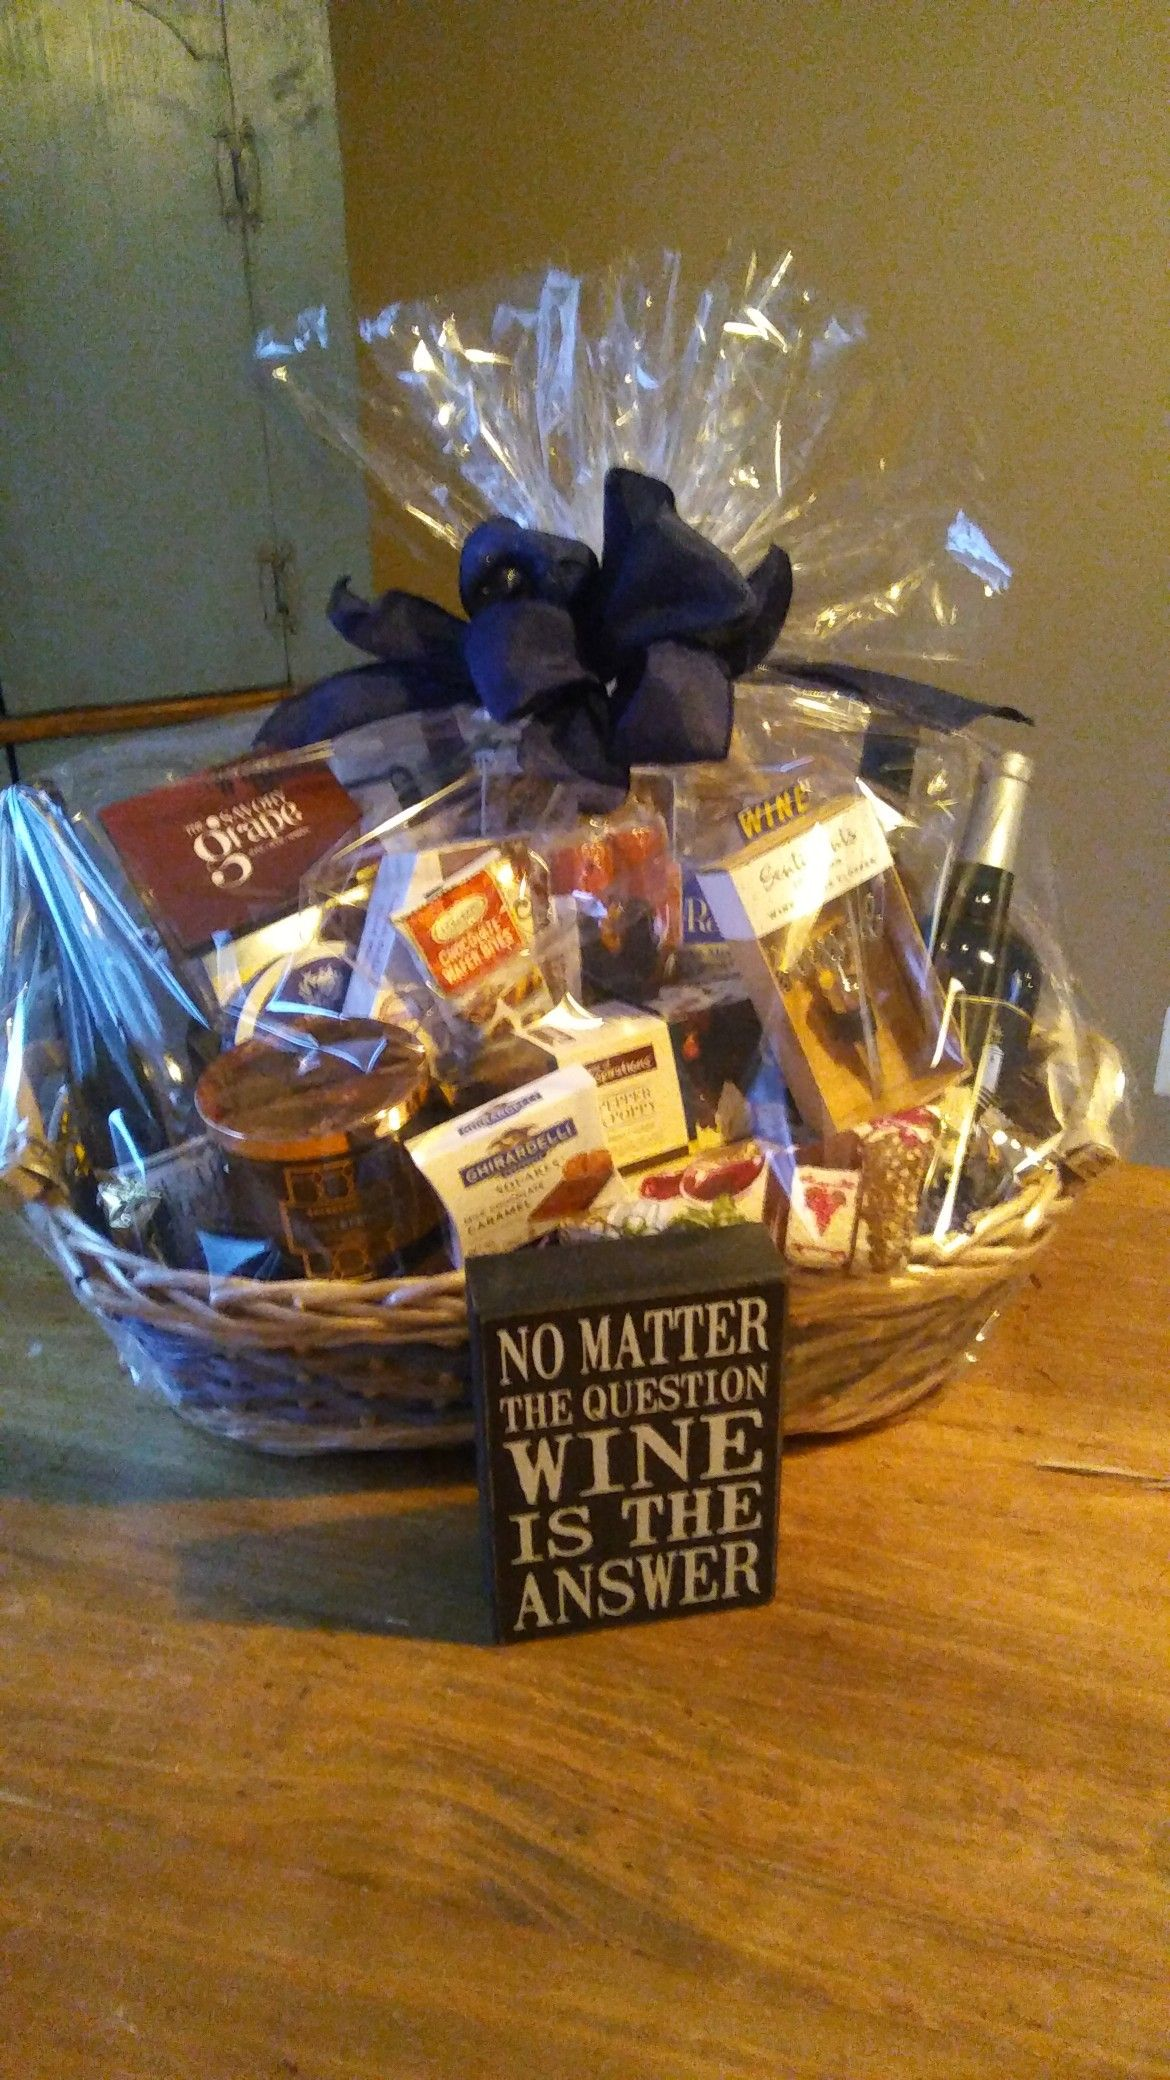 Pin by Sherri Onorato on Made by me Wine baskets, This